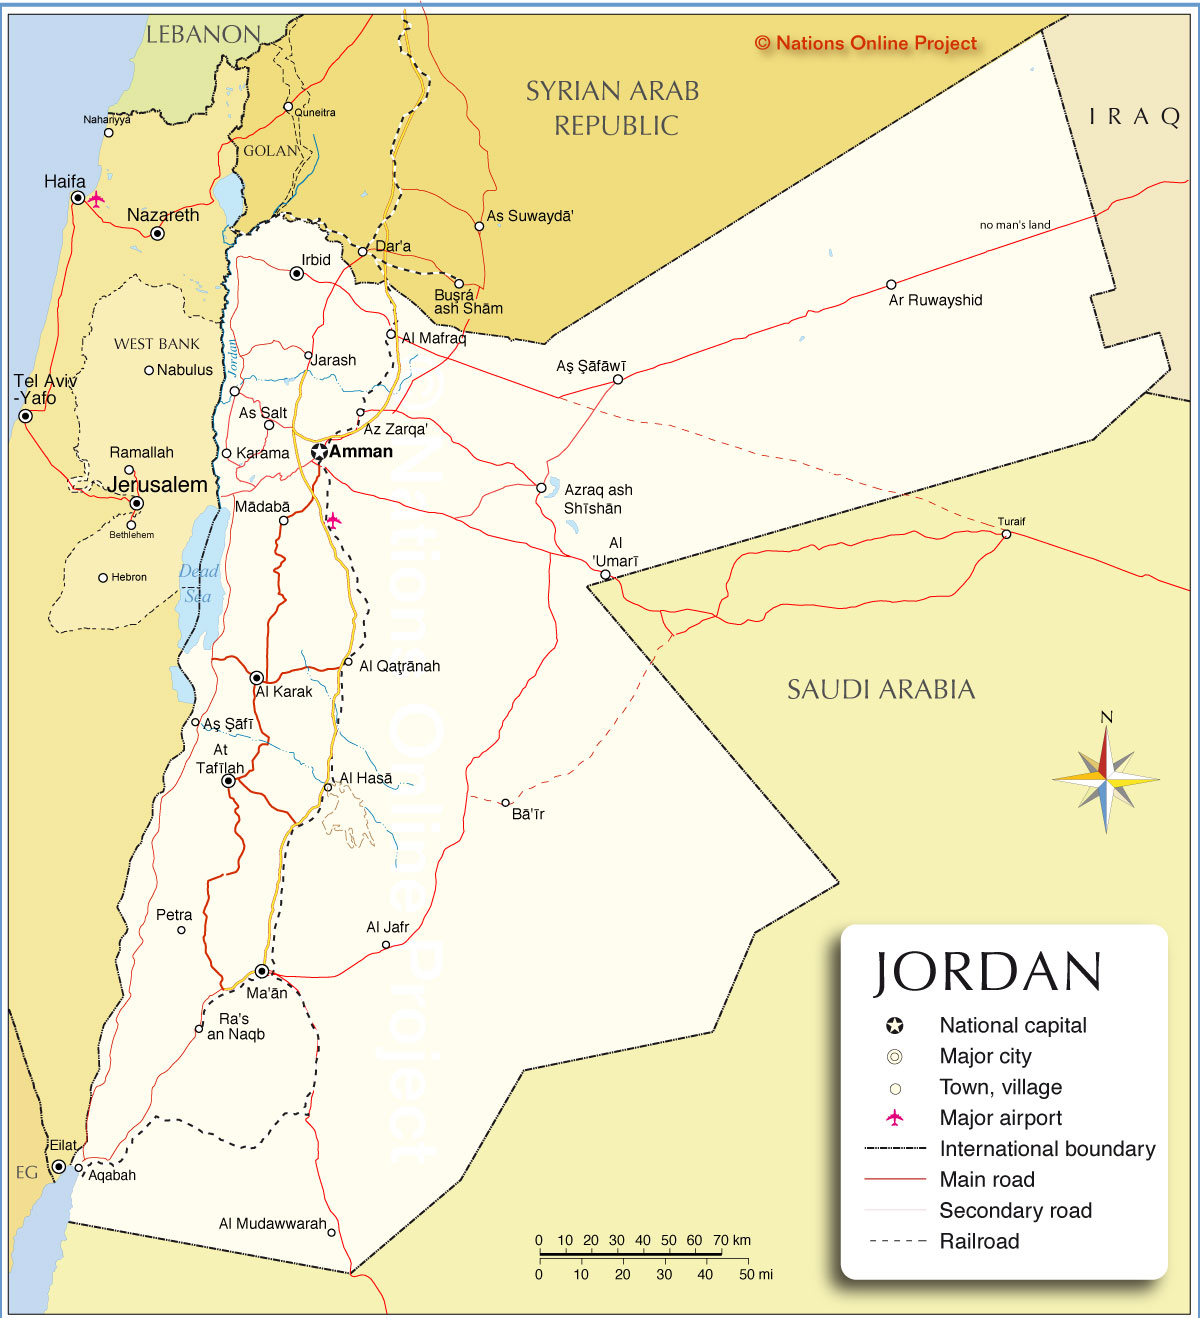 Political Map of Jordan - Nations Online Project